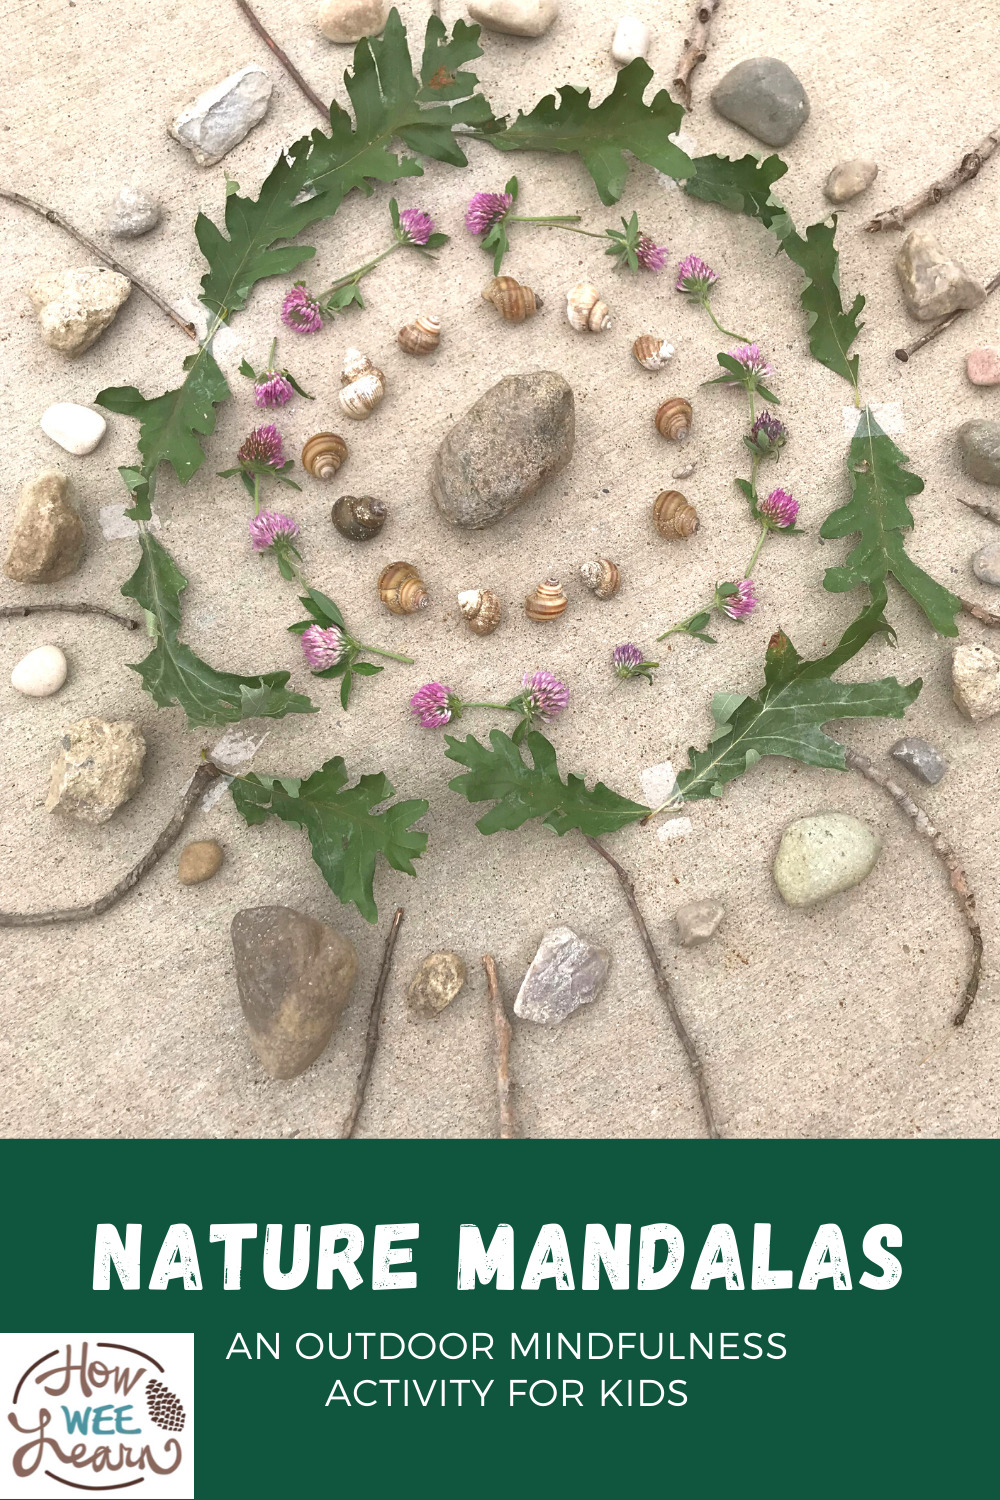 These nature sandals are the most beautiful outdoor craft for kids. Incorporate some mindfulness into kids' activities